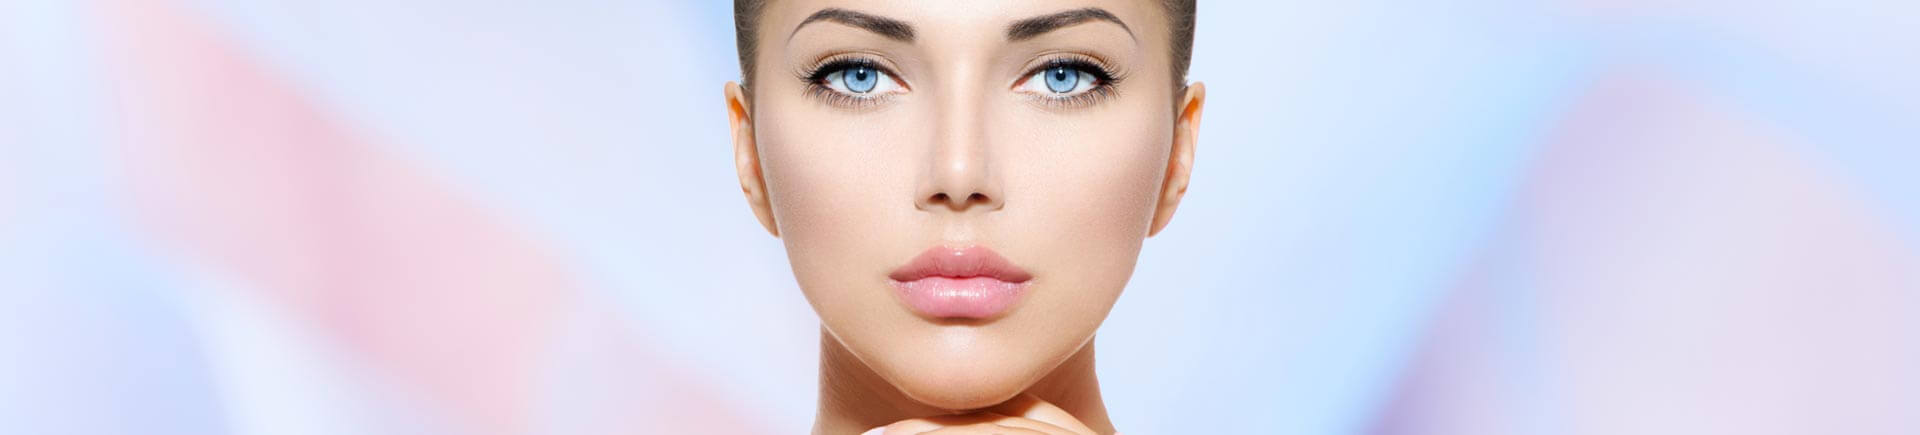 Laser Treatments and IPL New York, NY